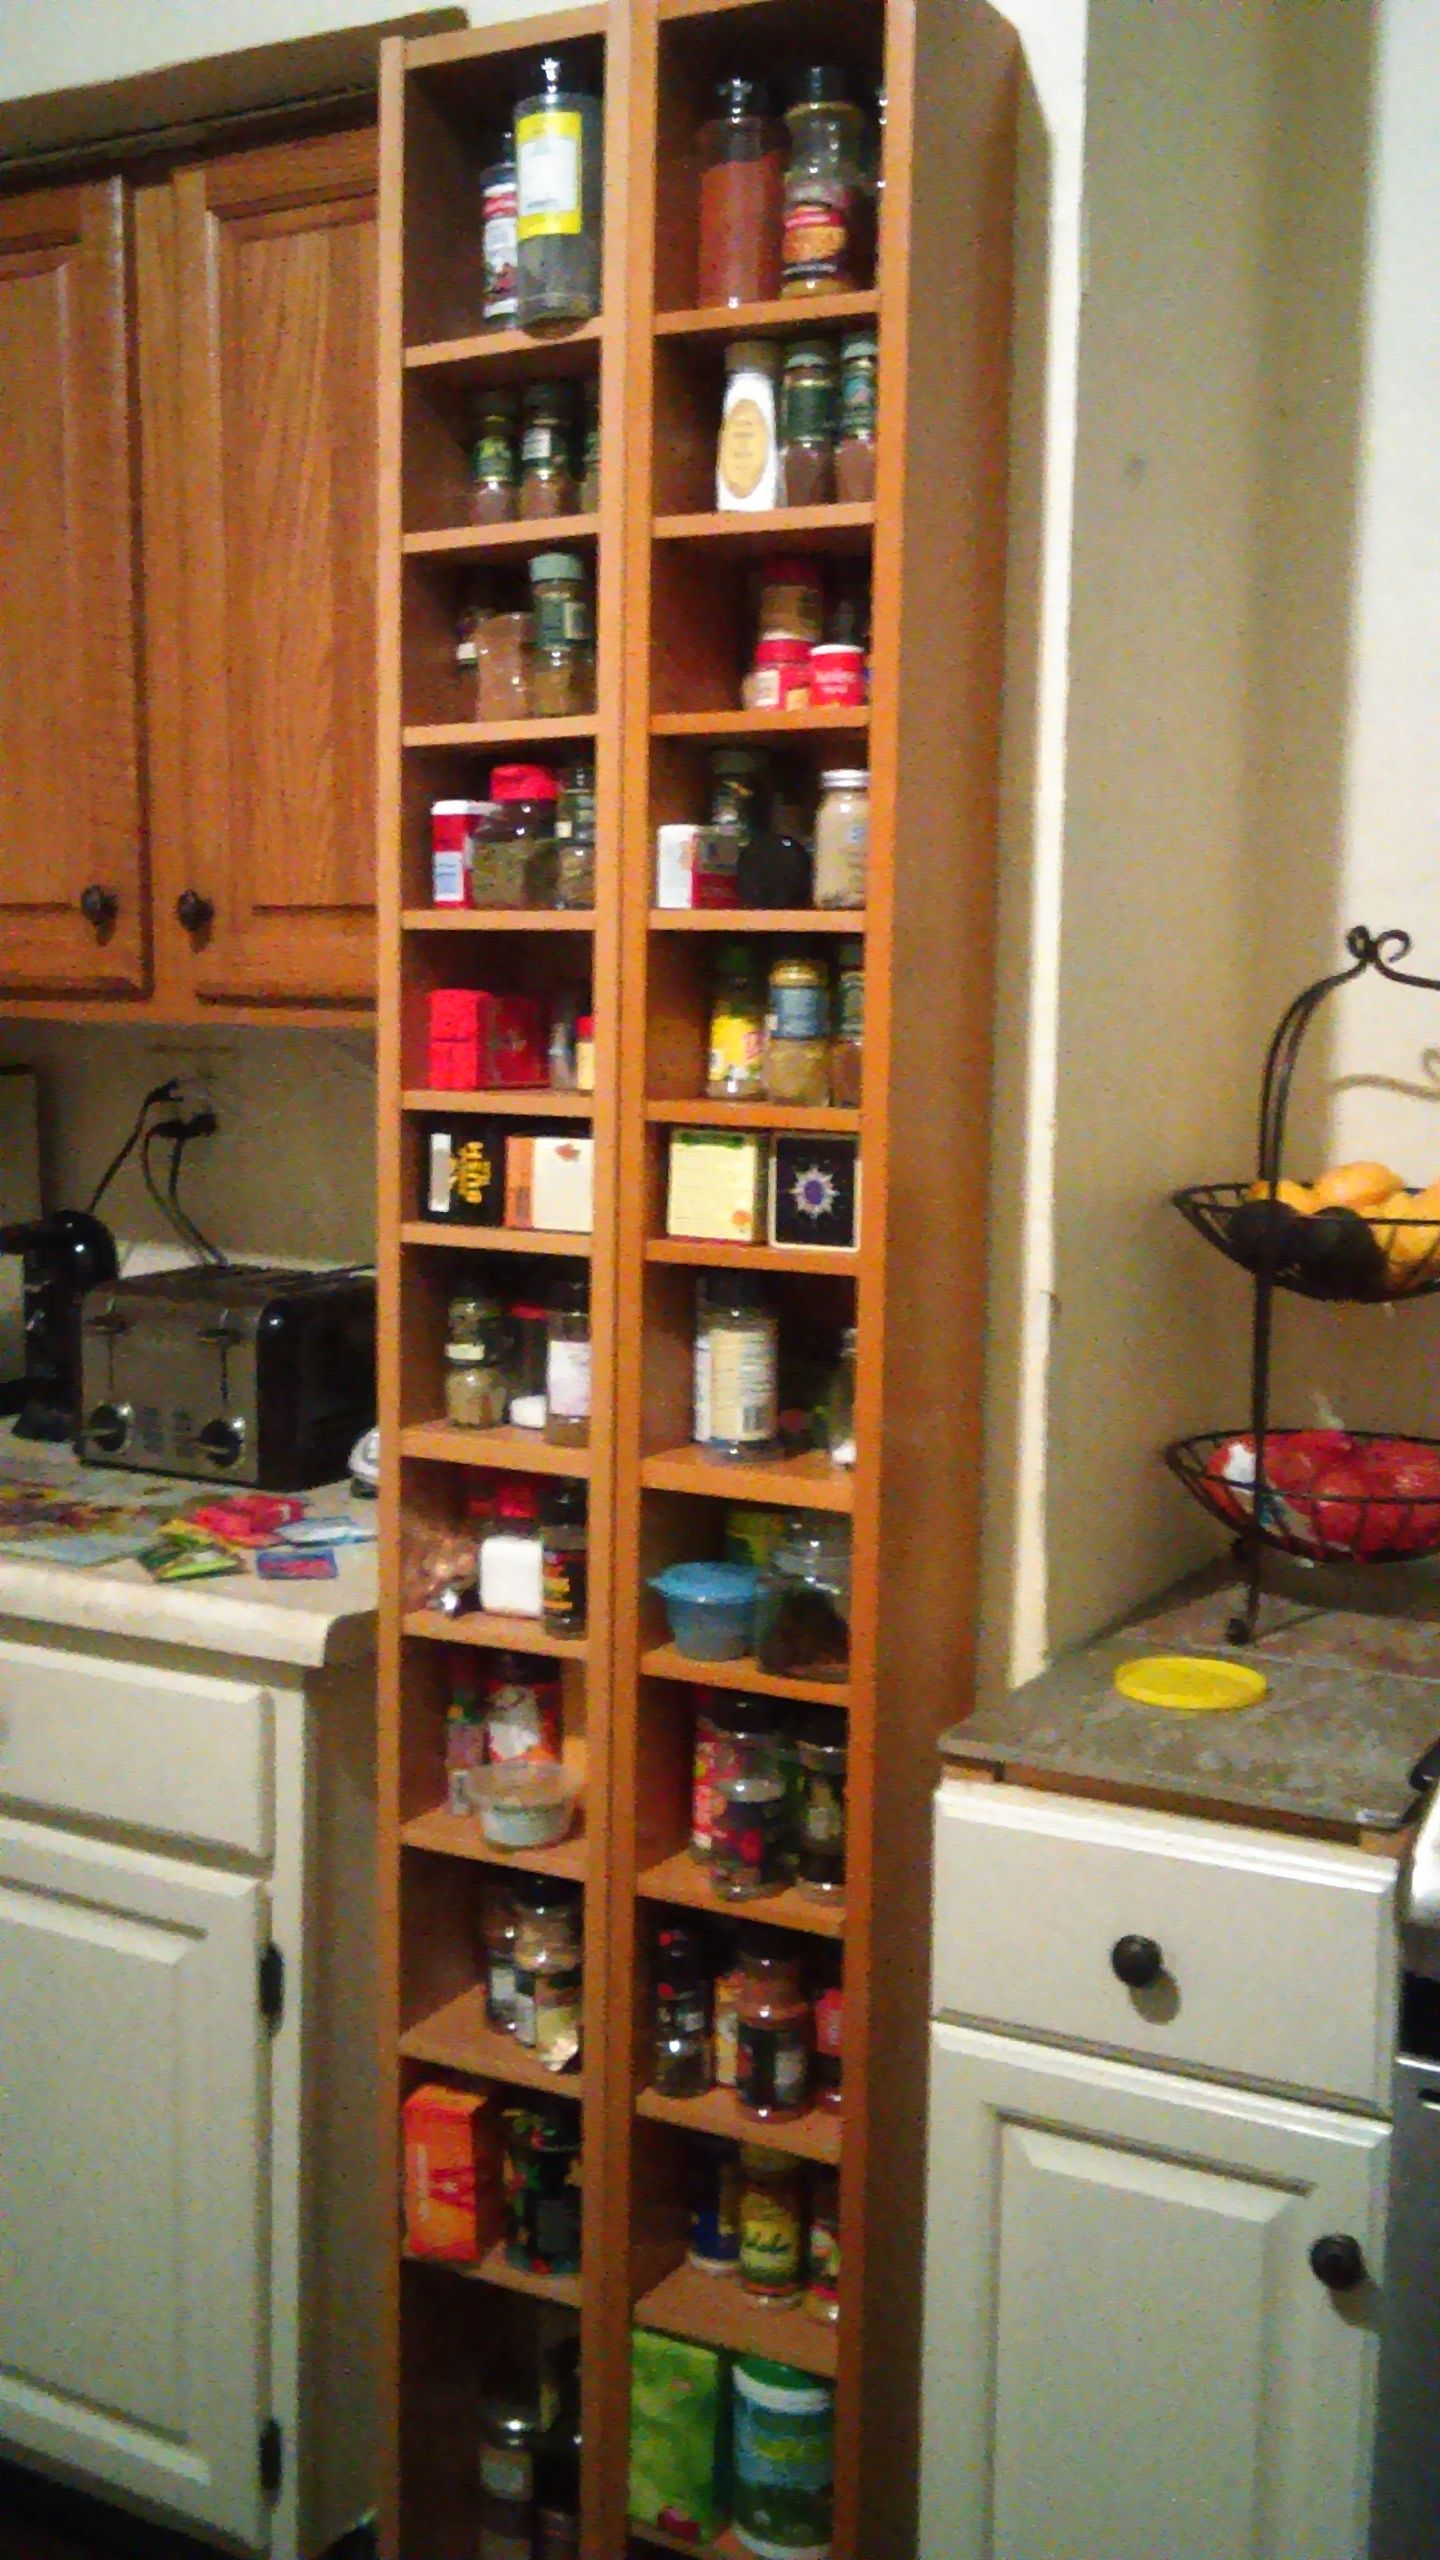 Ikea Cd Rack Used As A Spice Rack In My Kitchen Organization Pinterest Kitchens Small